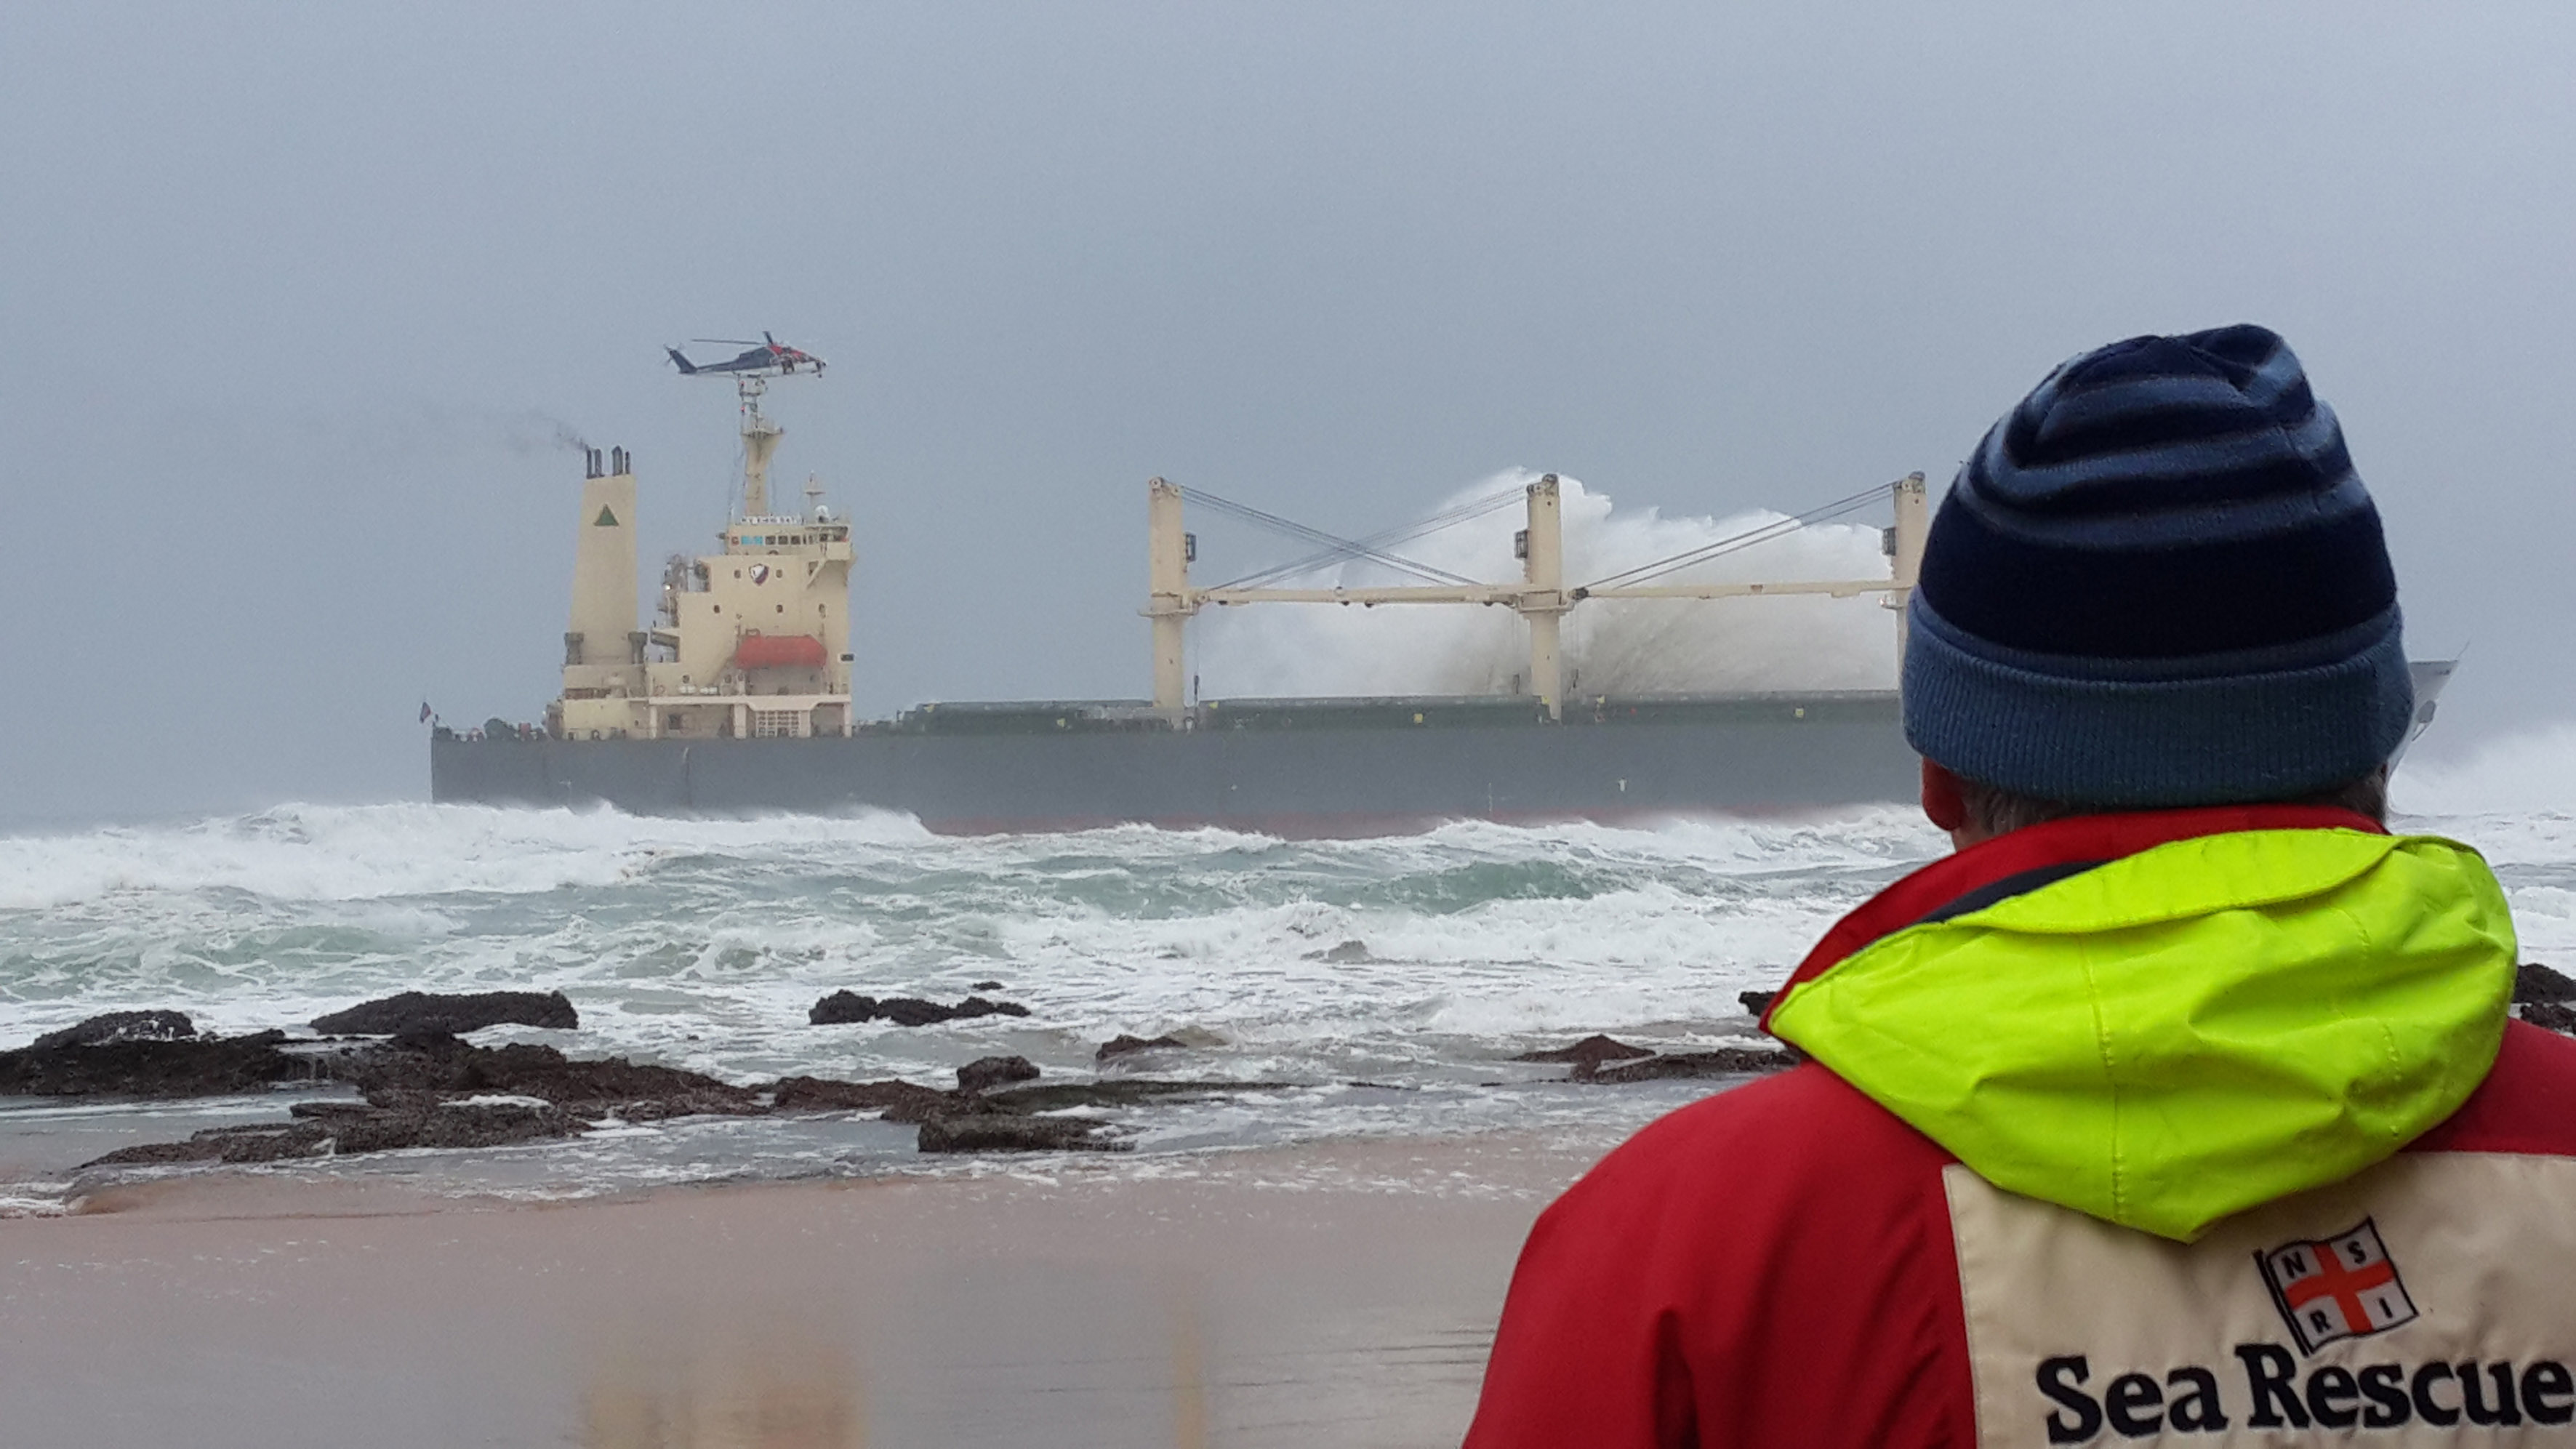 All 19 crew members were safely ashore after being rescued off the ship KIANI SATU. They were airlifted off the ship by a Titan helicopters Sikorski 76 helicopter. Picture Bianca Bezuidenhout / Wilderness NSRI volunteer.